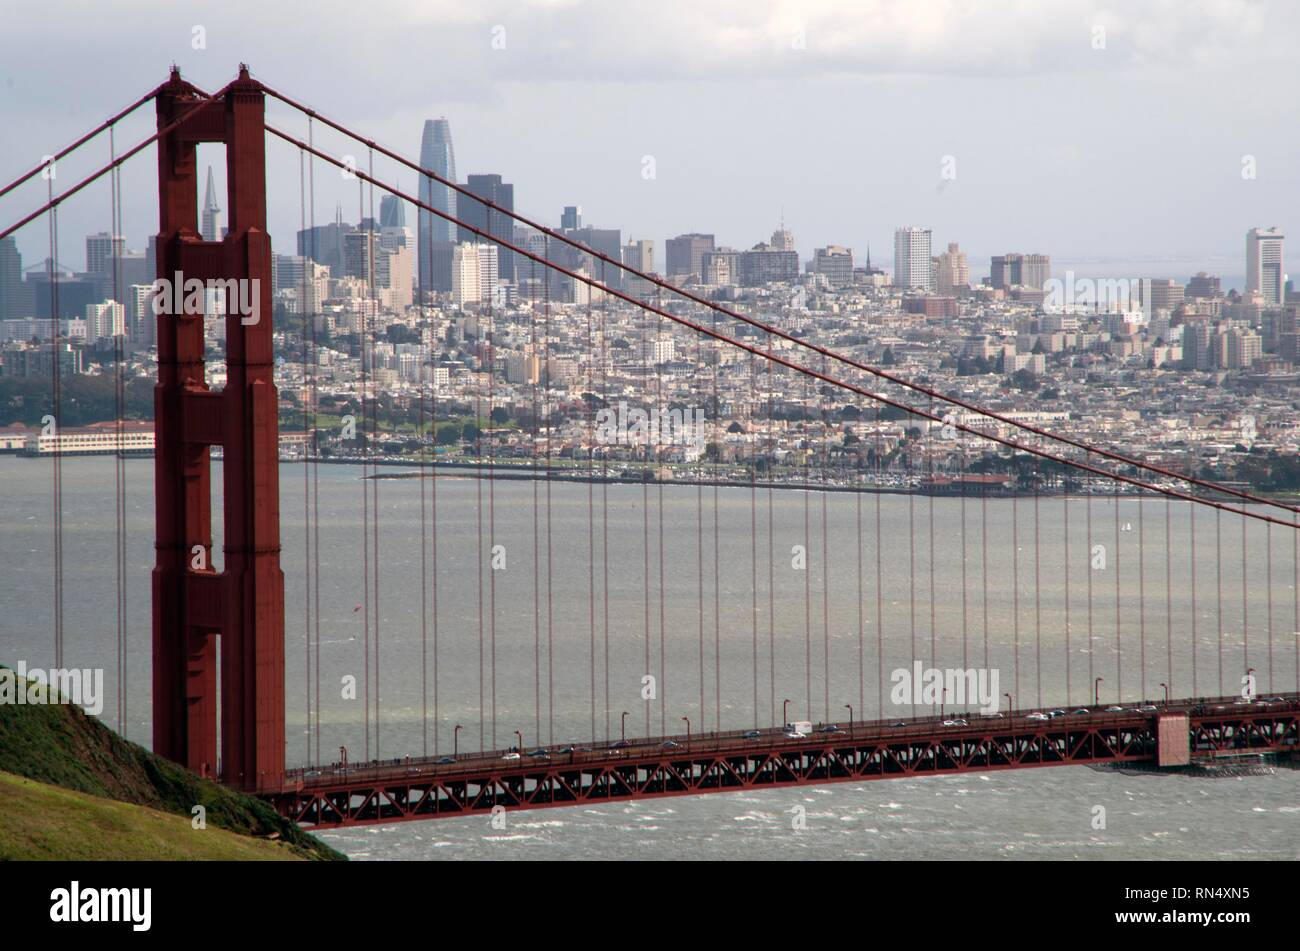 The city of San Francisco provides a nice backdrop to the Golden Gate Bridge, seen from the Marin Headlands. - Stock Image